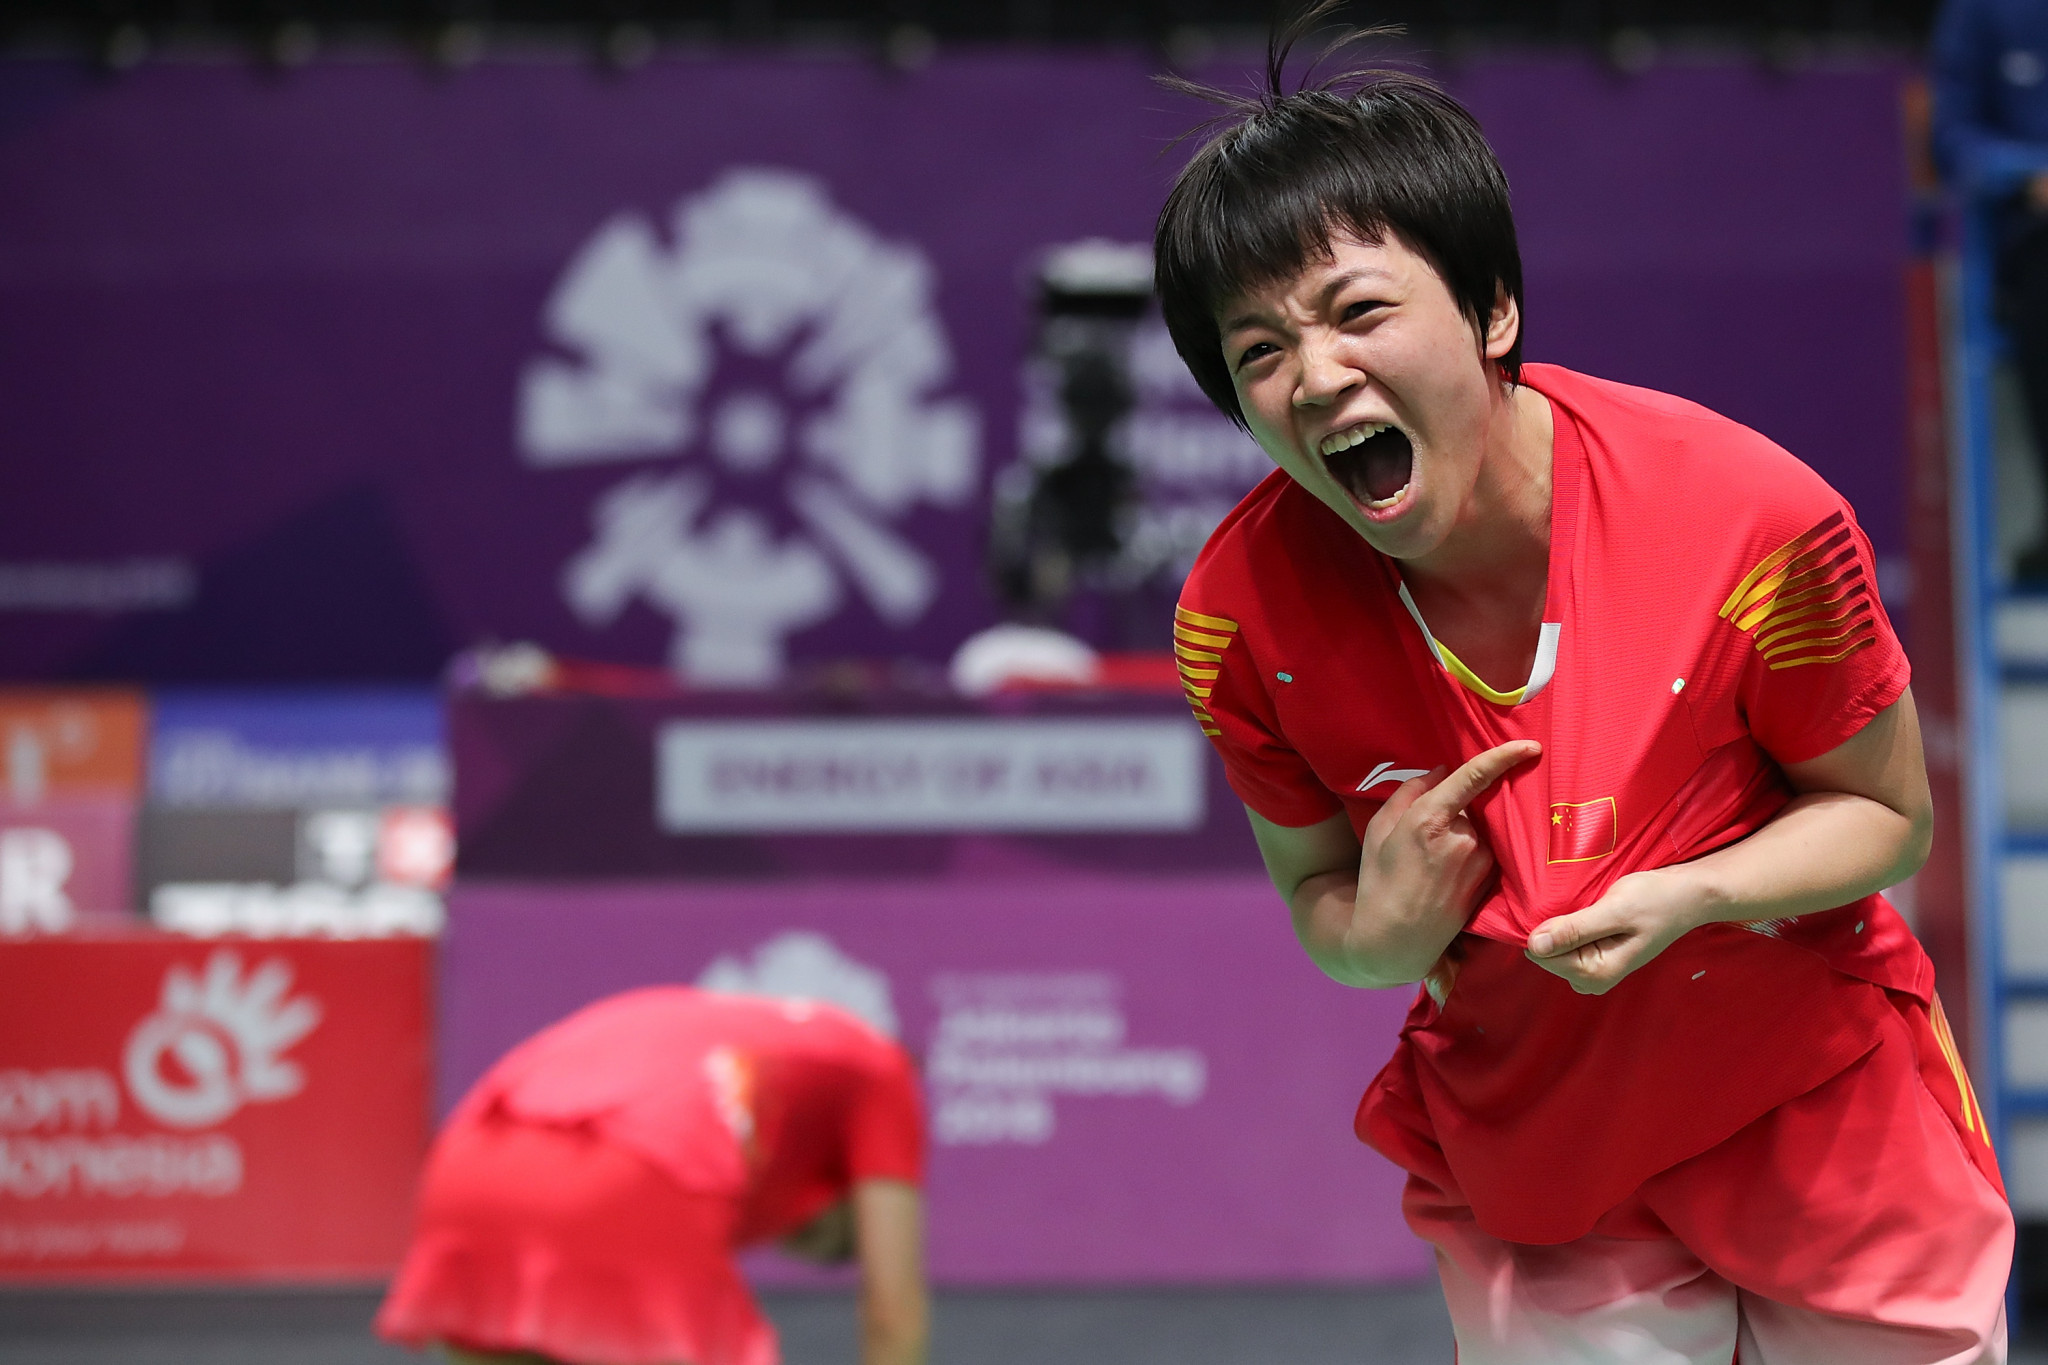 Record seventh win for China in women's badminton doubles at Asian Games